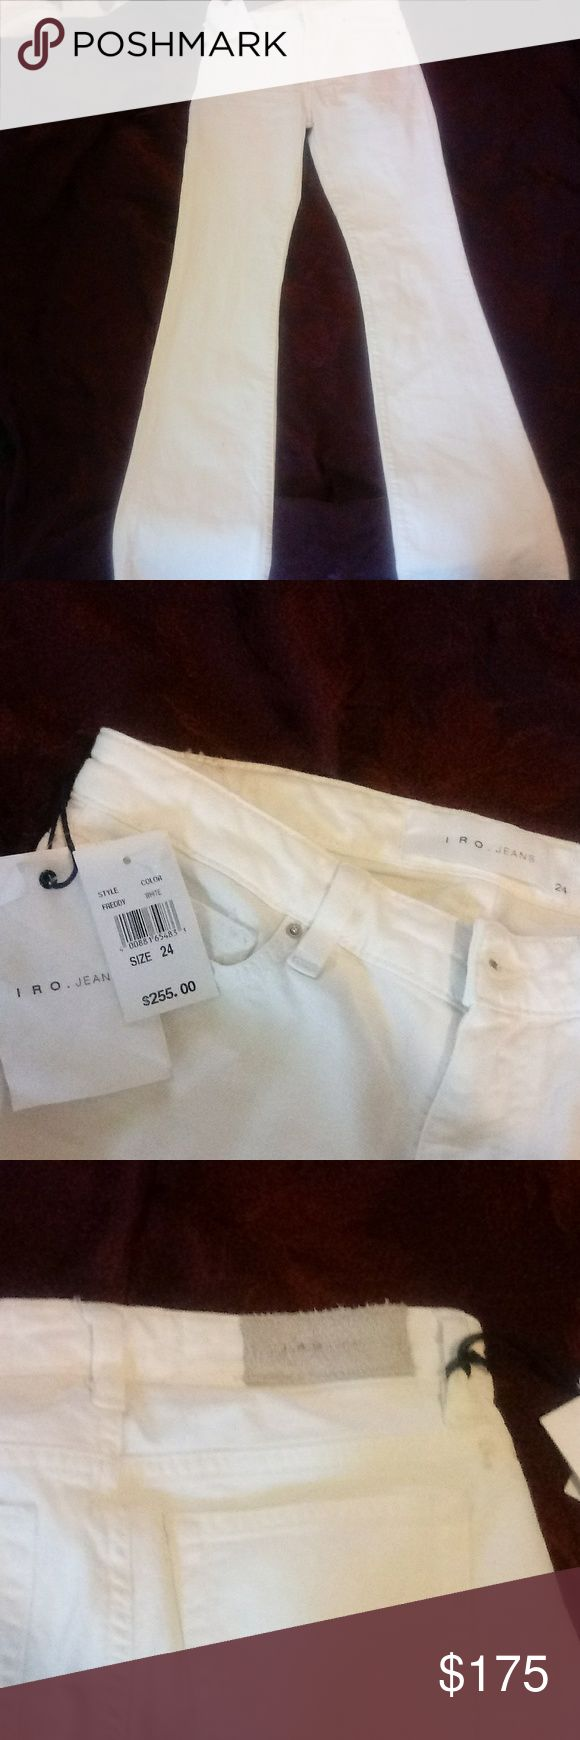 IRO jeans tags still on These are like new still have the tags on them they are 24 in the waist and awesome looking jeans all around be great for any tall slender girl Jeans Boot Cut